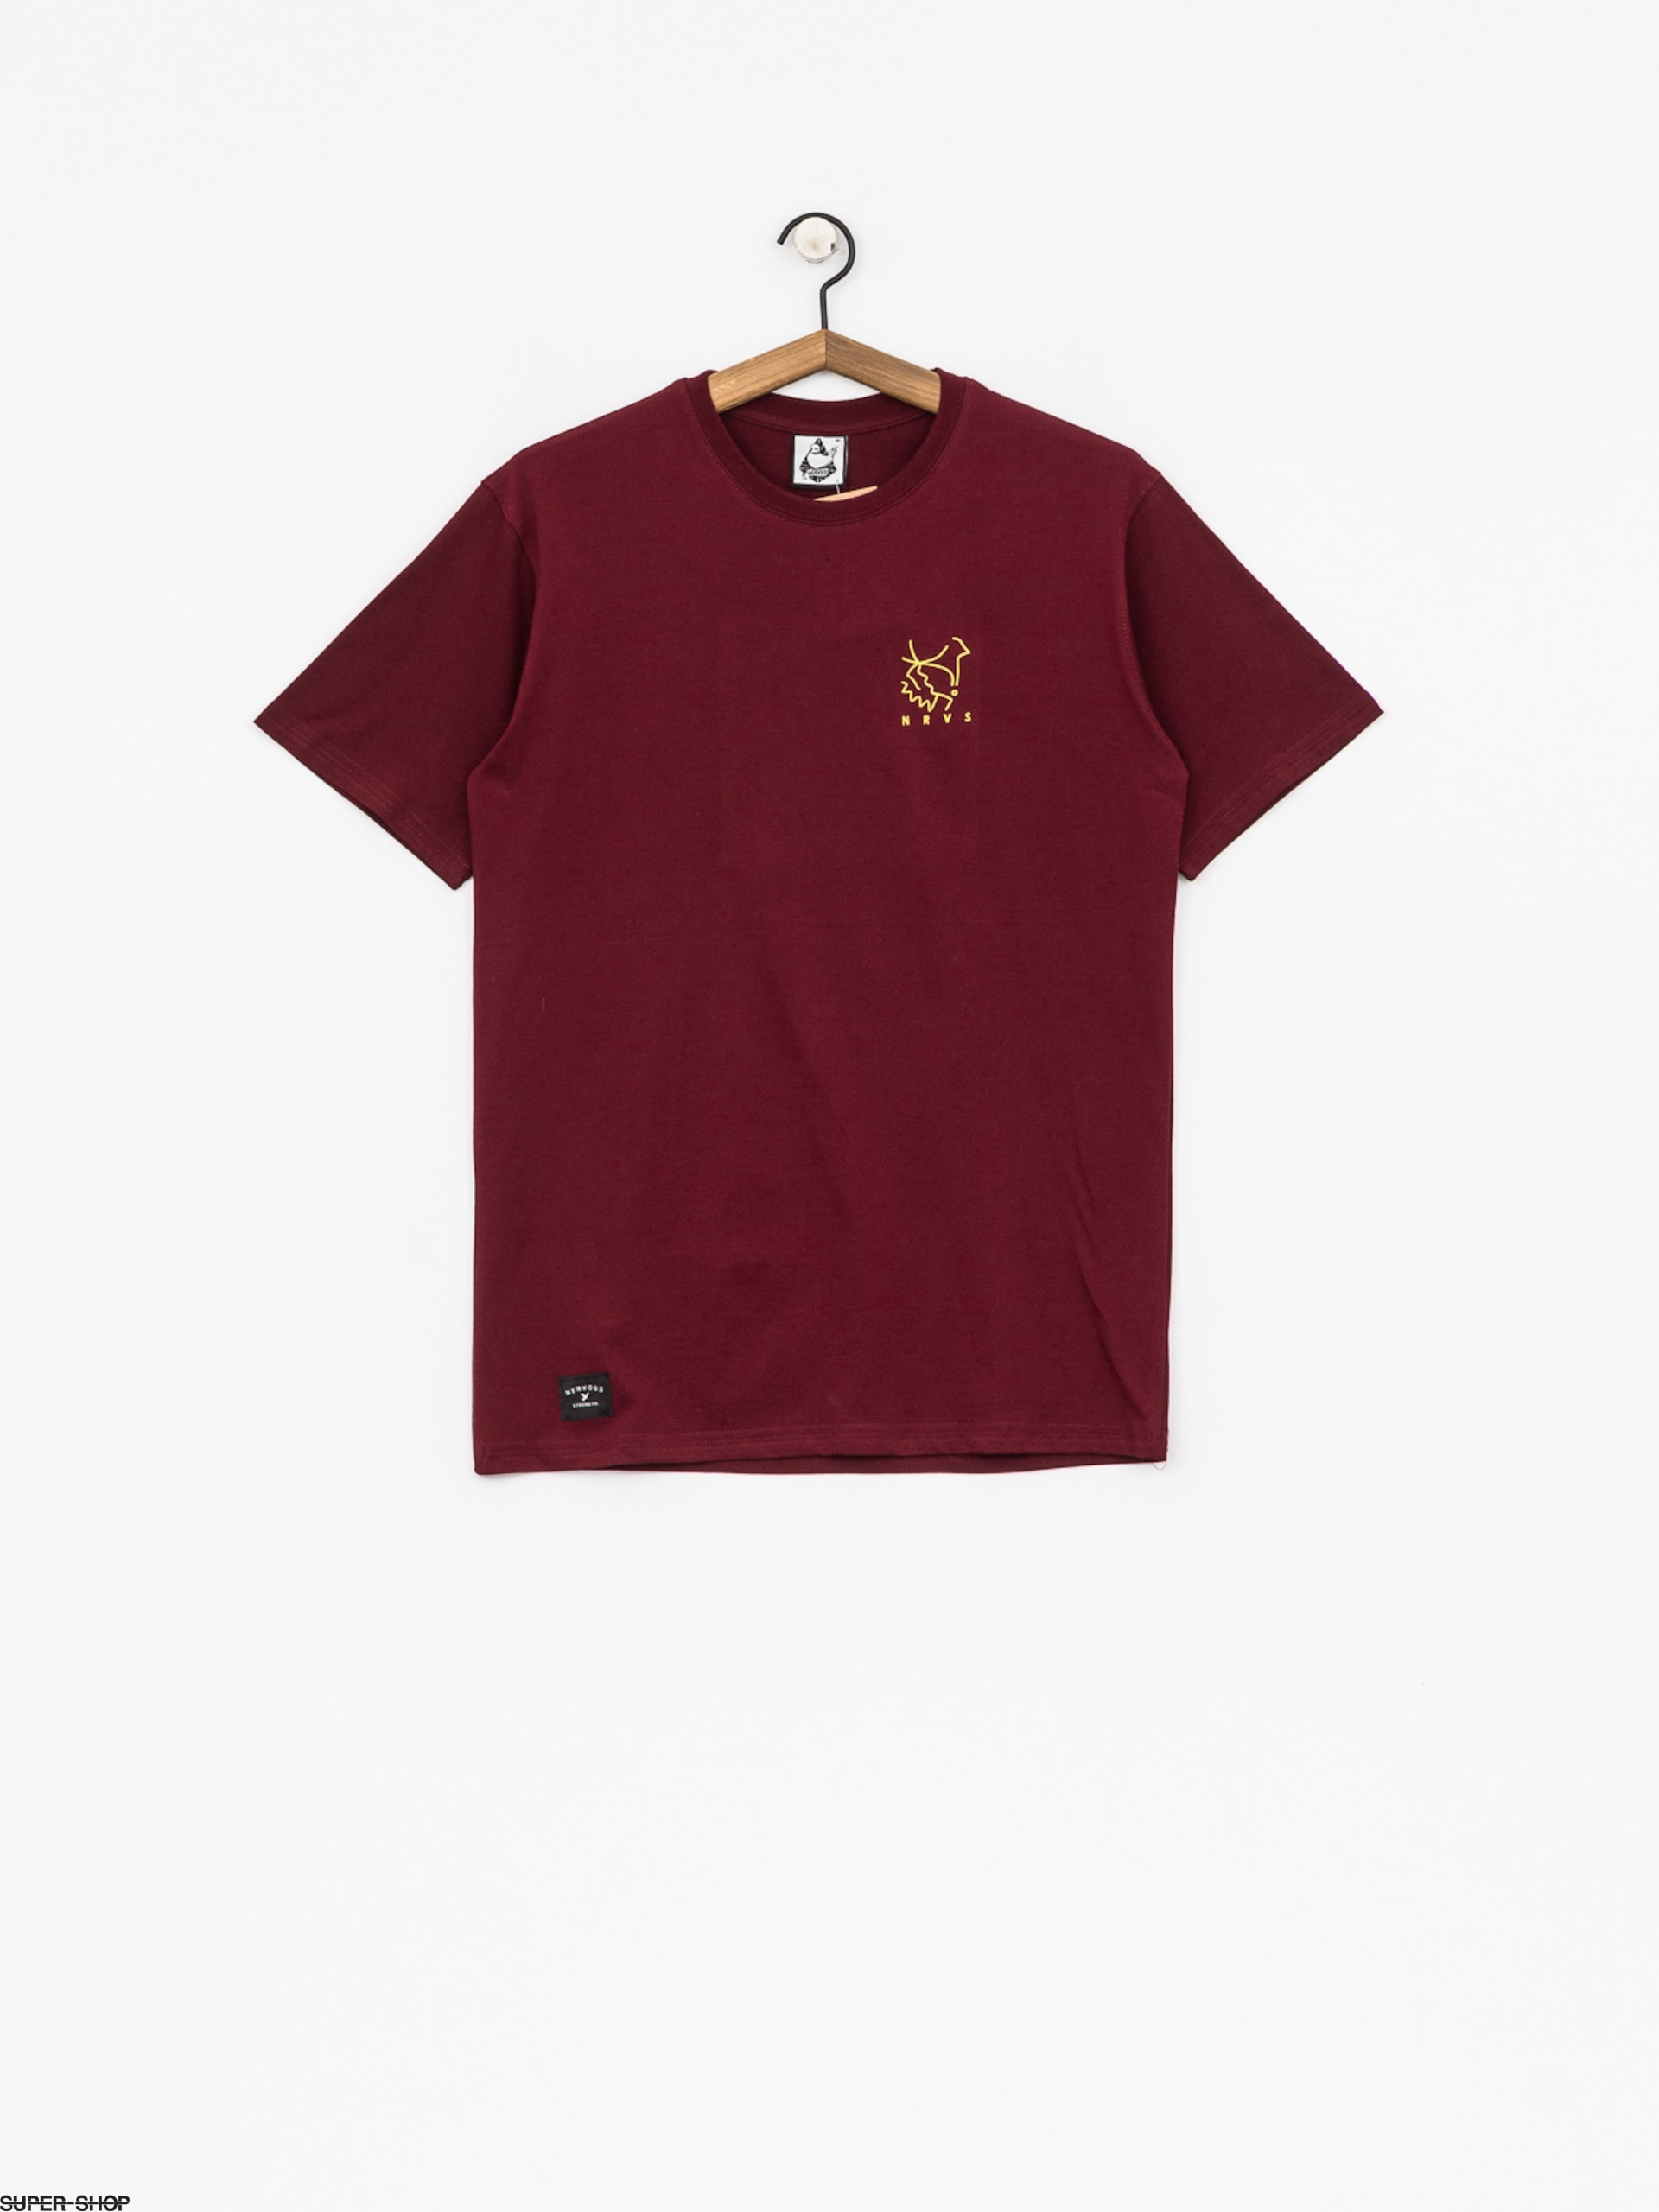 Nervous T-shirt Deconstruct (maroon)